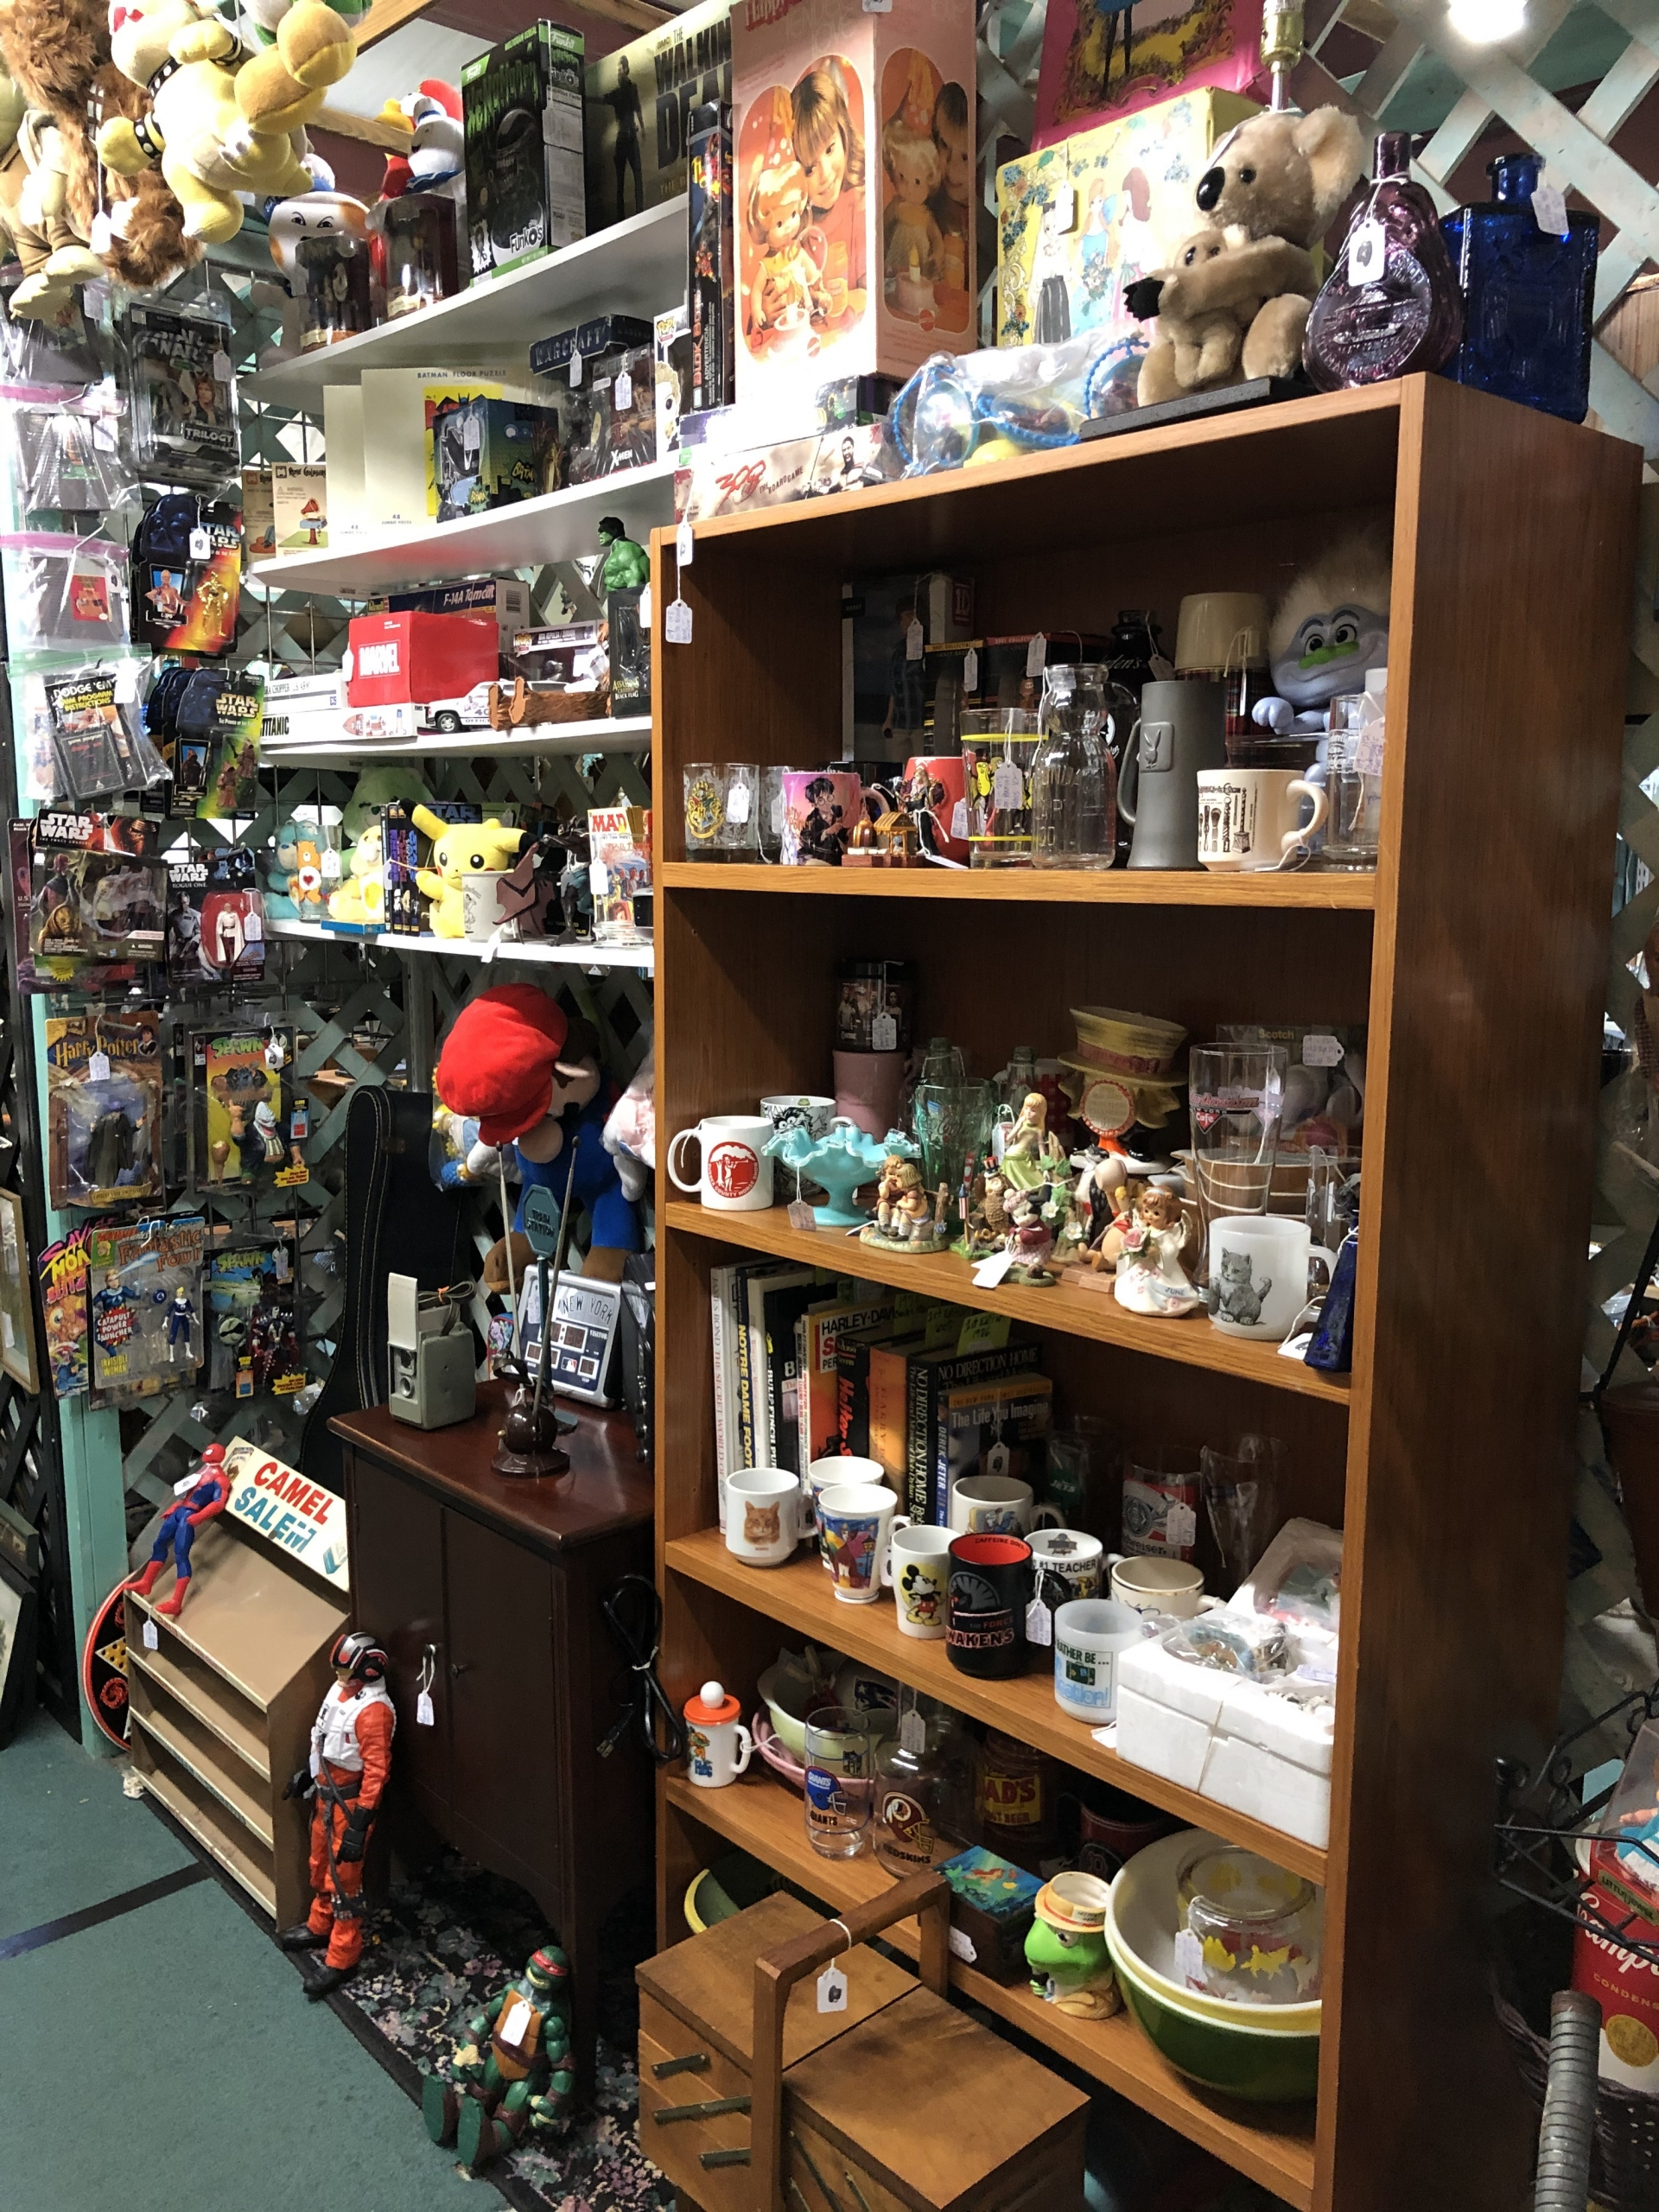 New Dealer Sneak Peek - Summer 2020 - Scranberry Coop - Vintage Store - Antiques, Collectibles, & More